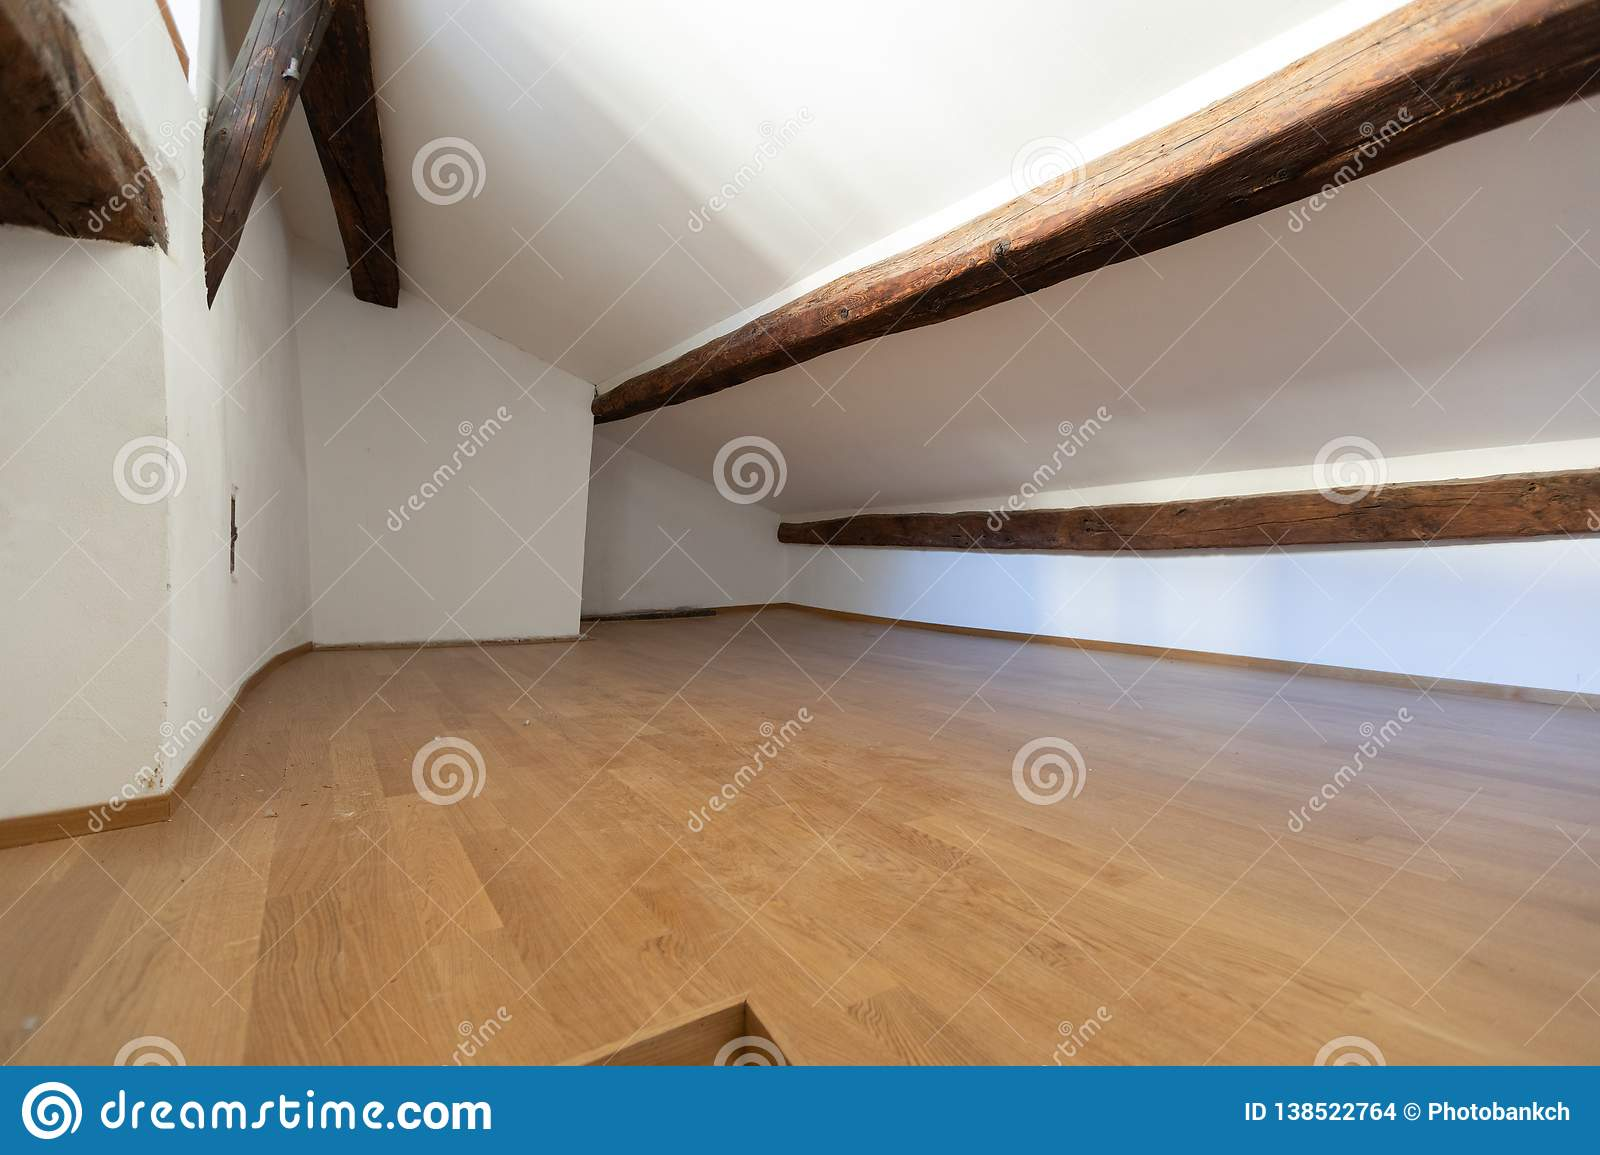 Attic with wooden beams and parquet